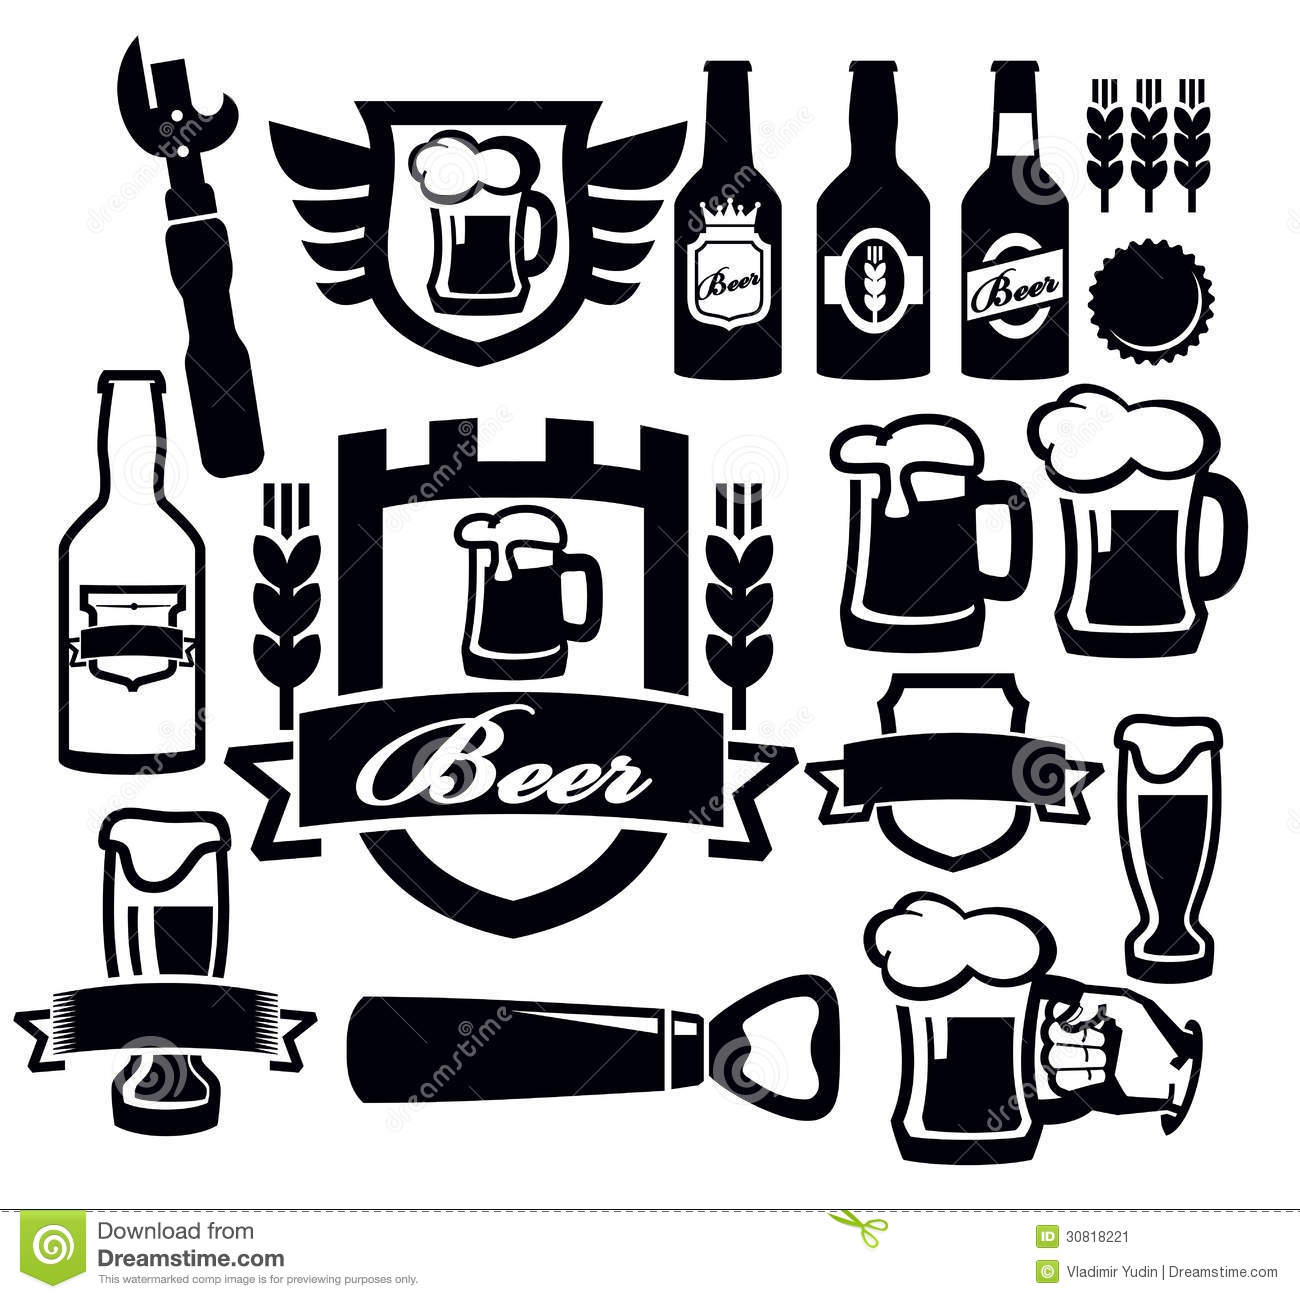 Beer Icon Stock Image - Image: 30818221